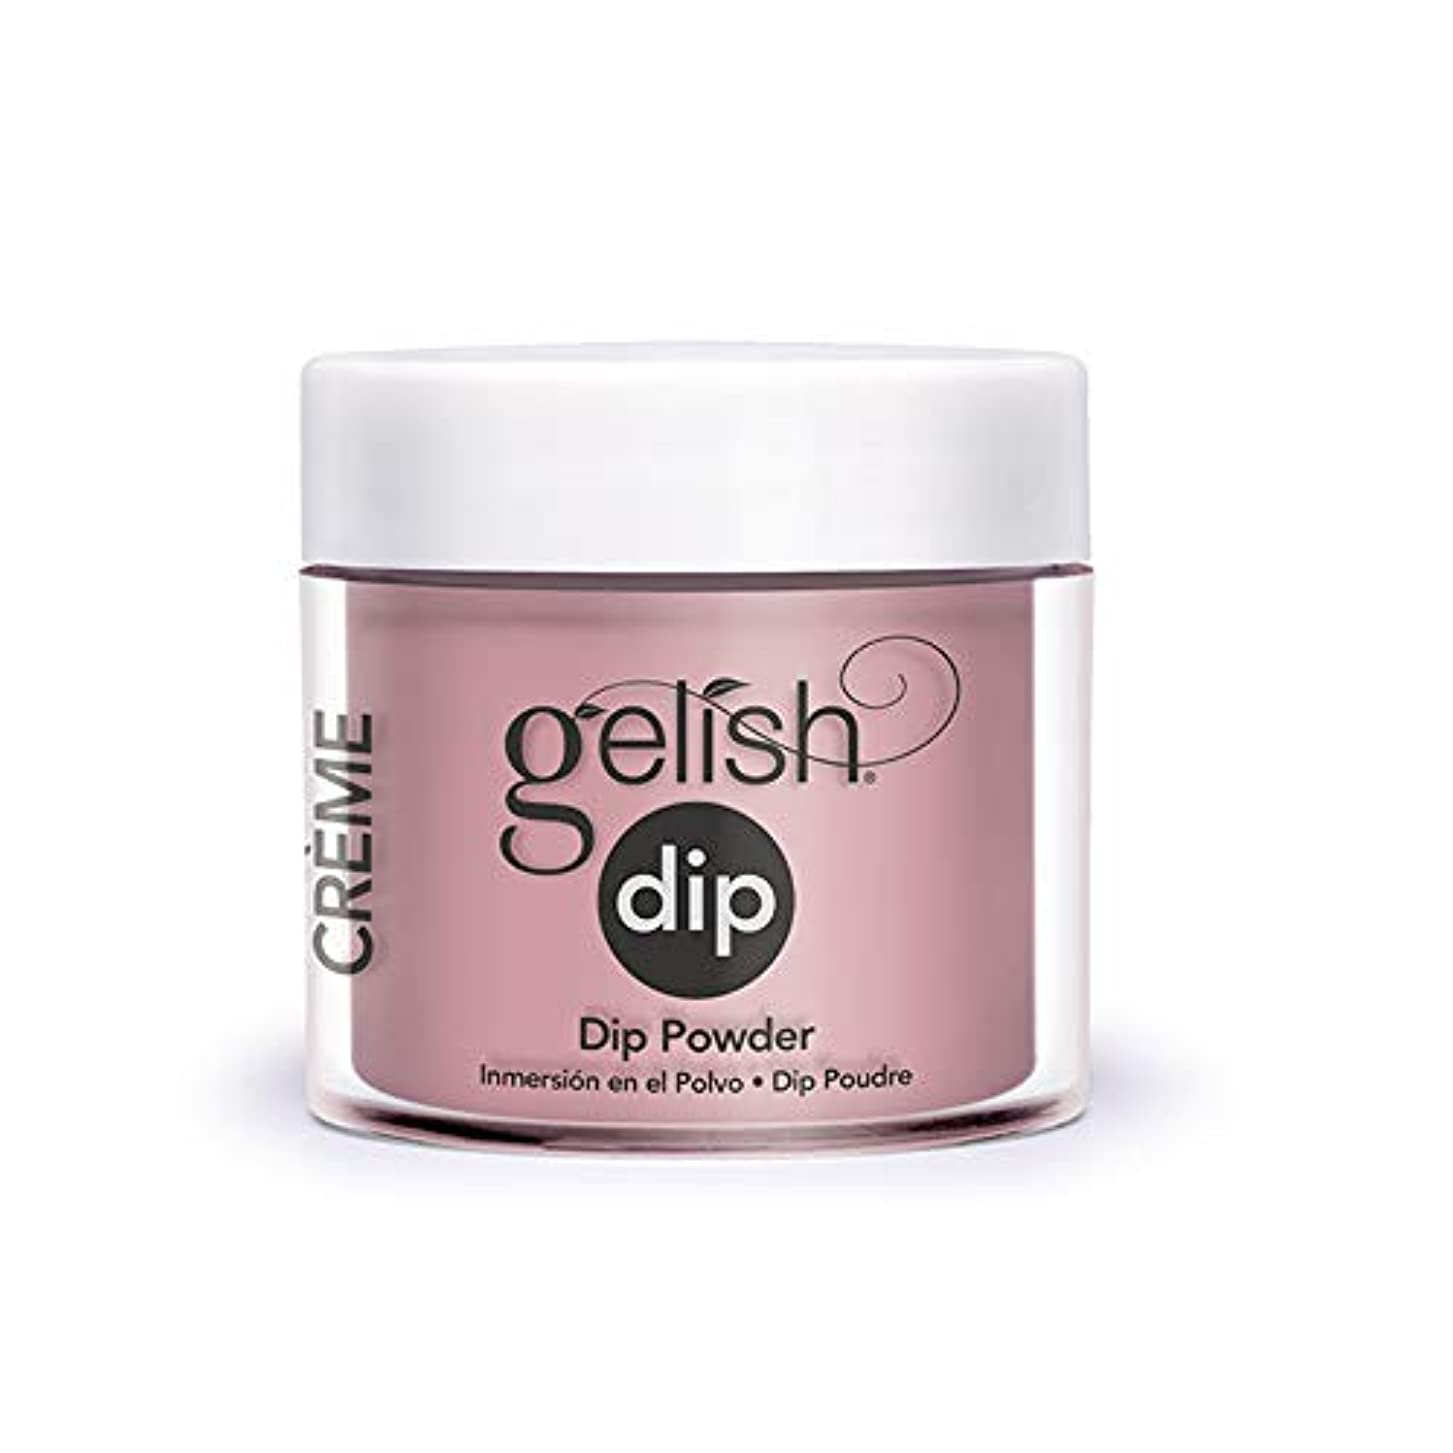 Harmony Gelish - Acrylic Dip Powder - Exhale - 23g / 0.8oz